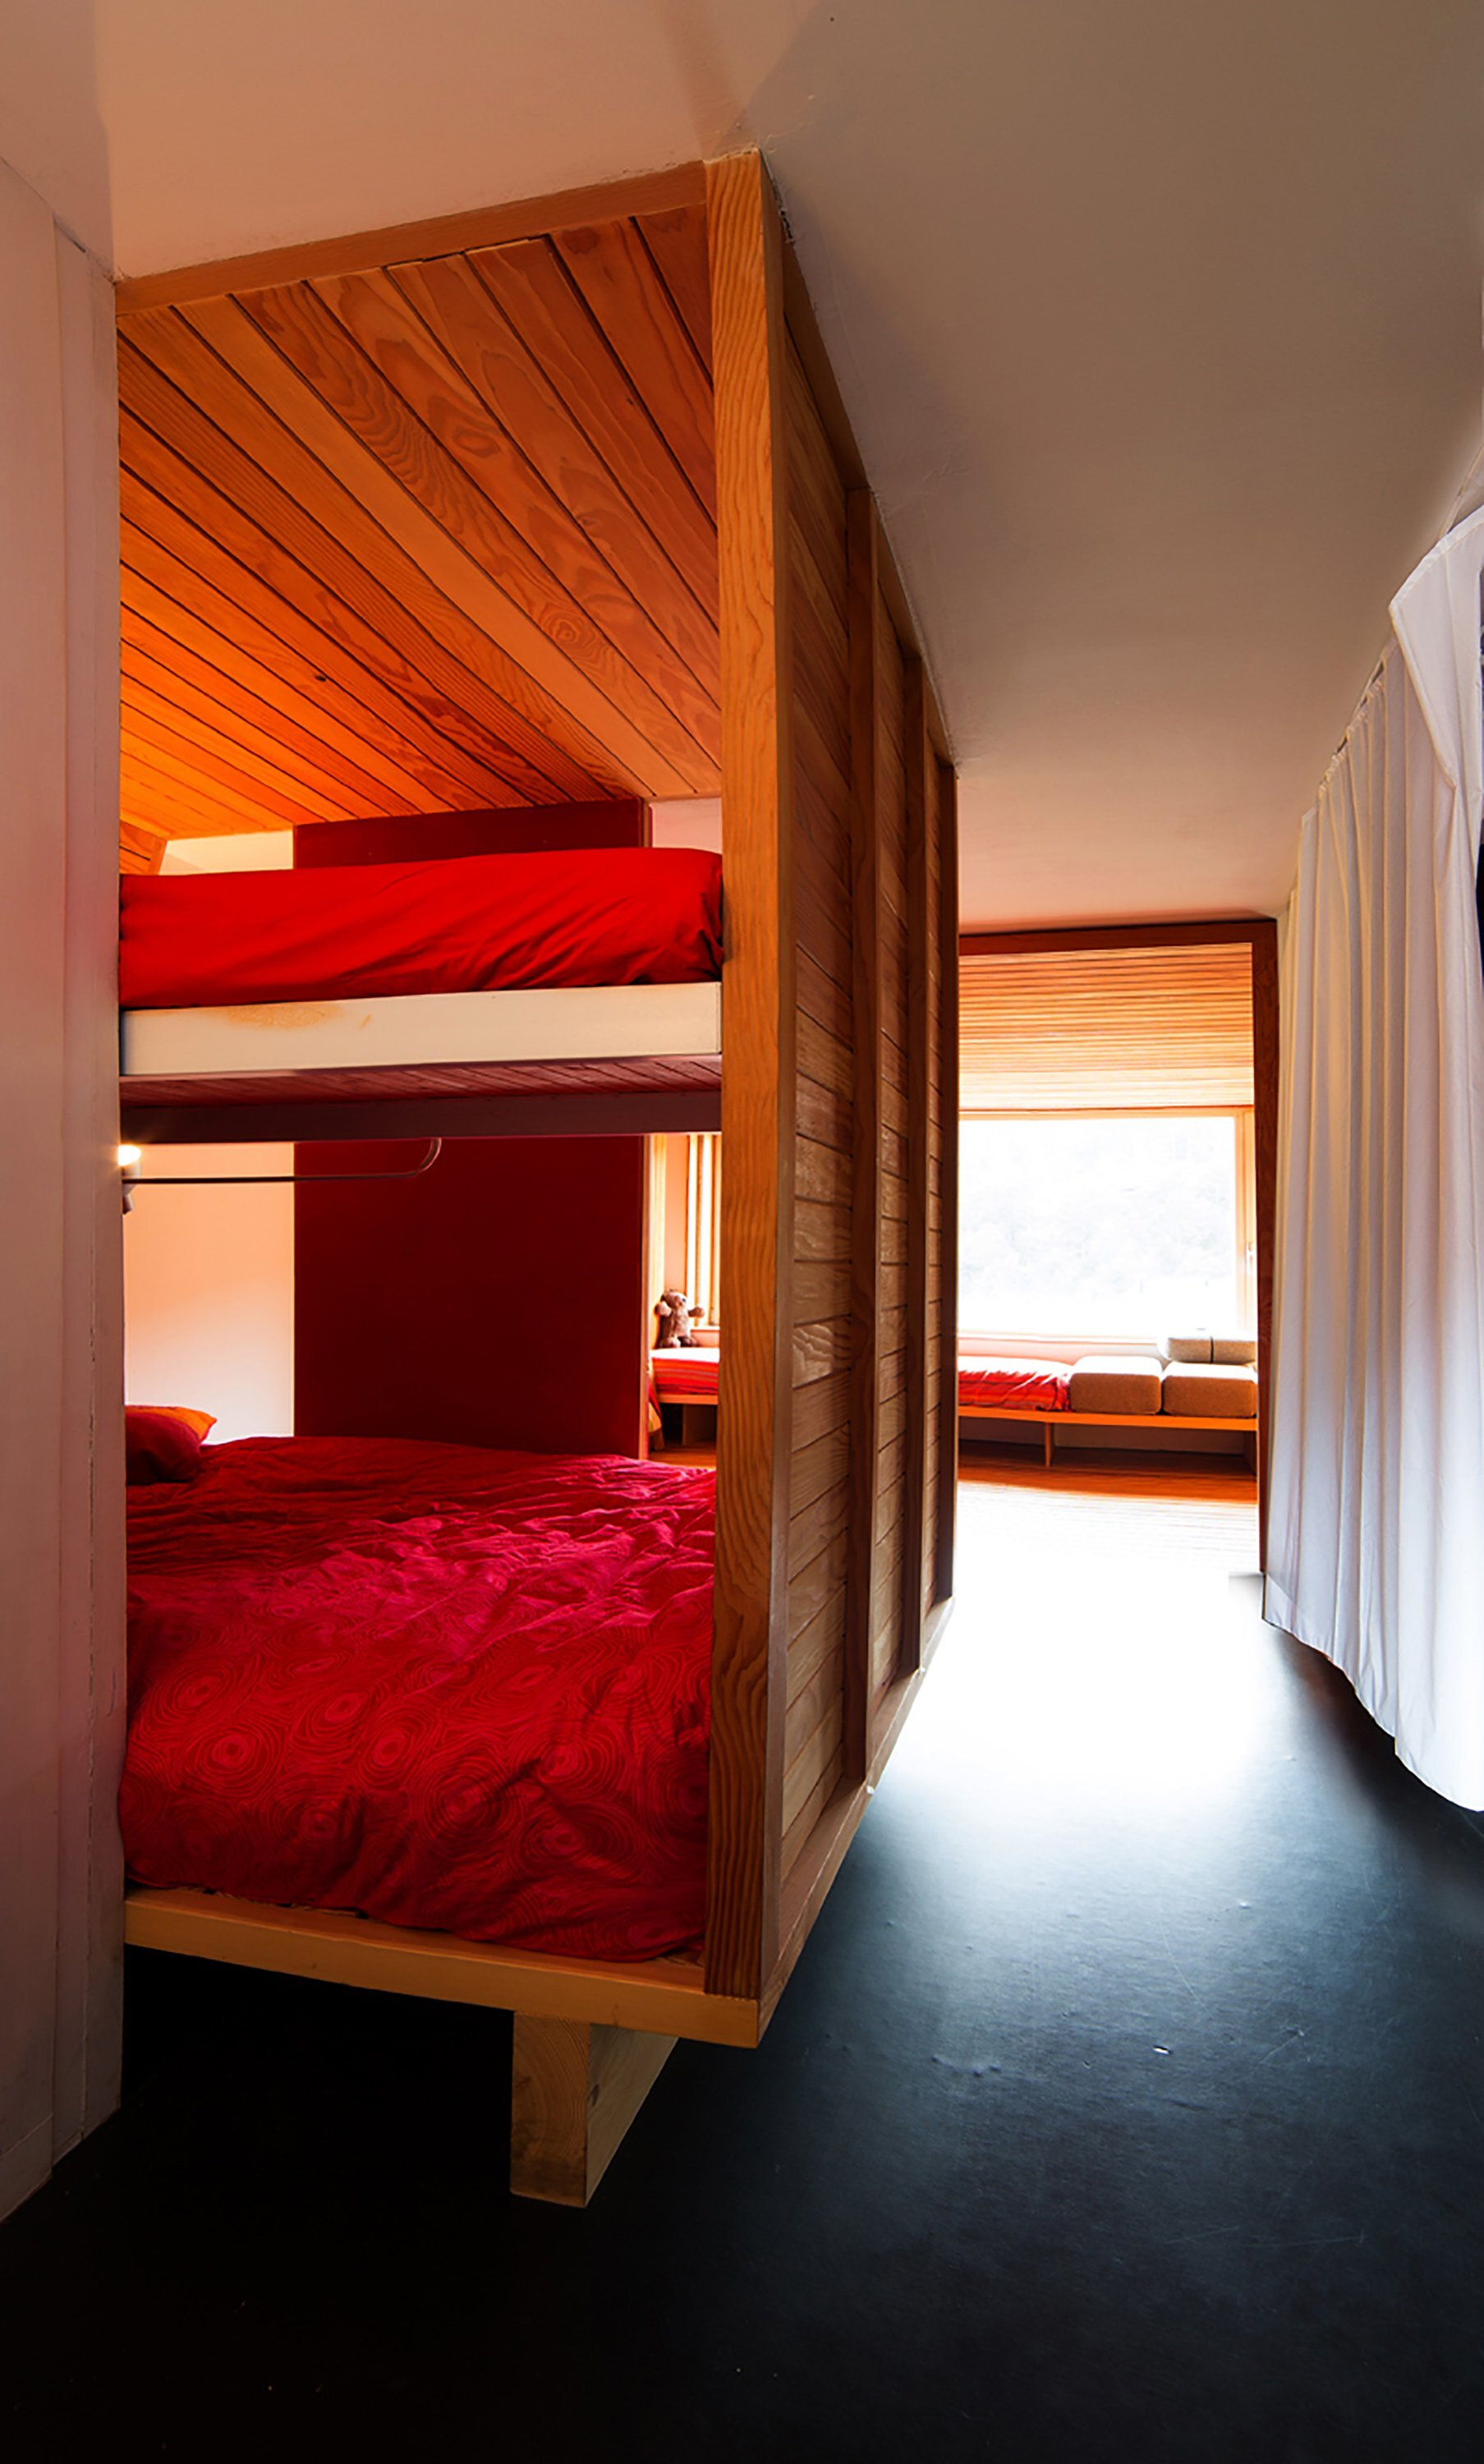 Studio in a Mountain Resort - Beriot Bernardini Arquitectos - Madrid Spain - Bunkbeds - Humble Homes